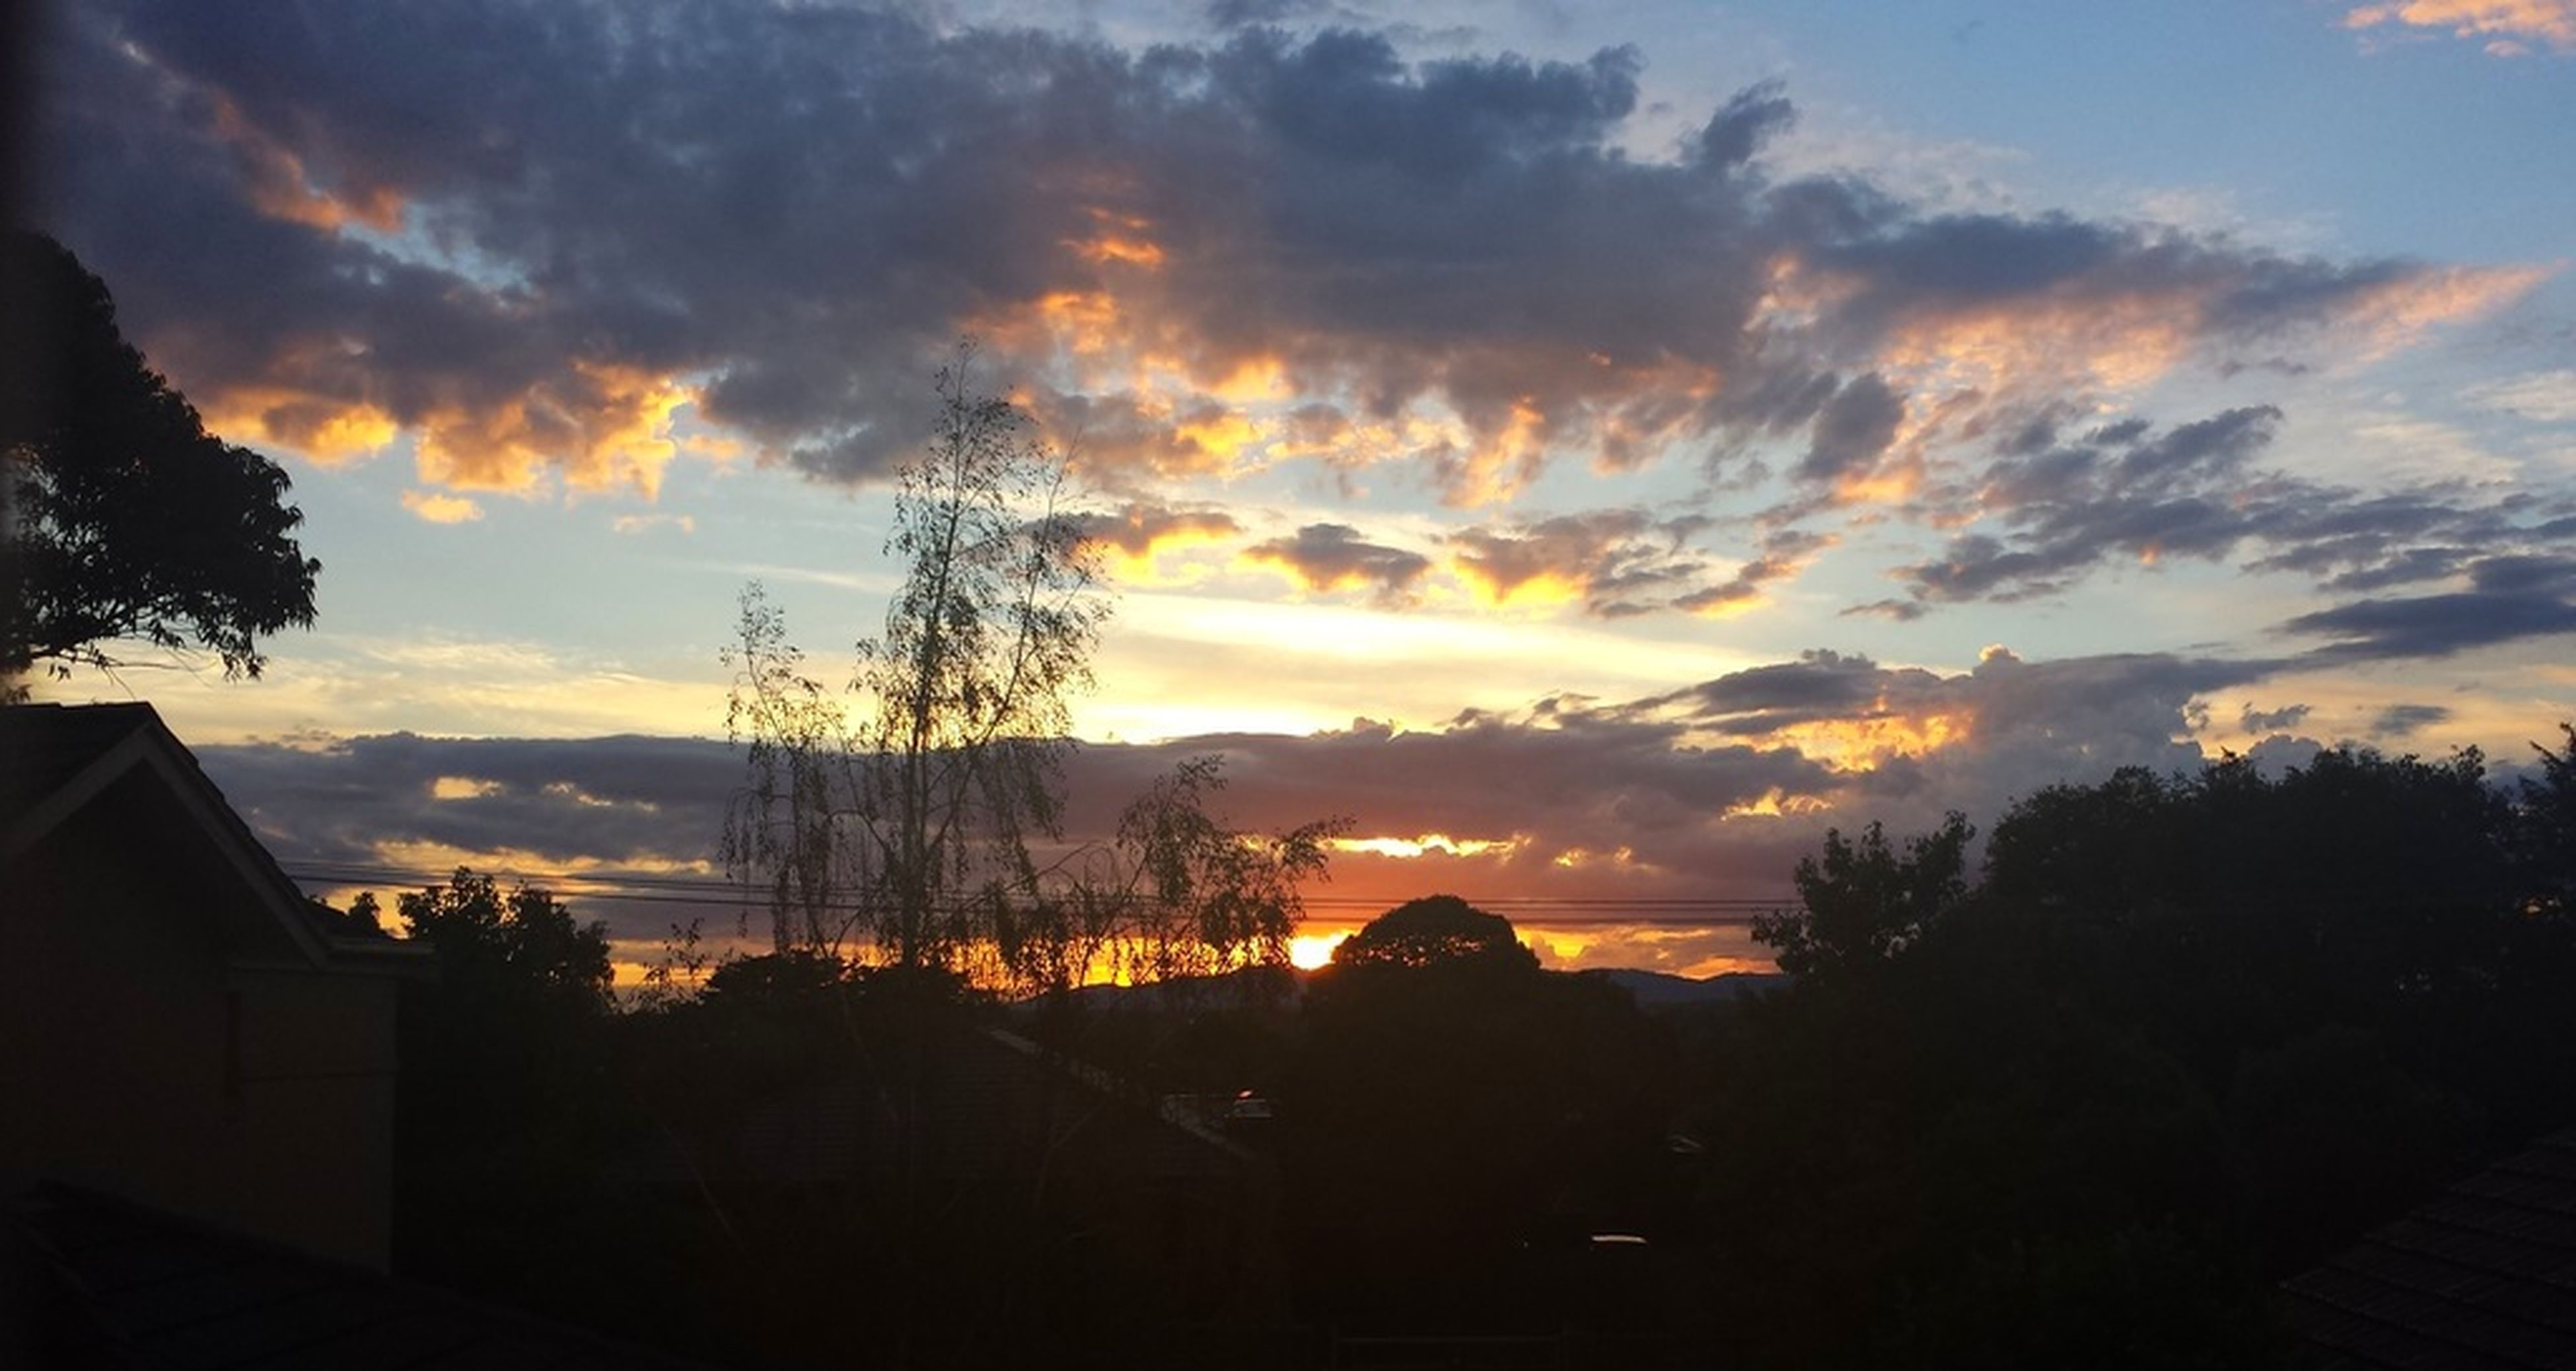 sunset, sky, silhouette, cloud - sky, building exterior, scenics, beauty in nature, cloudy, orange color, tree, built structure, cloud, architecture, dramatic sky, house, tranquil scene, nature, tranquility, idyllic, moody sky